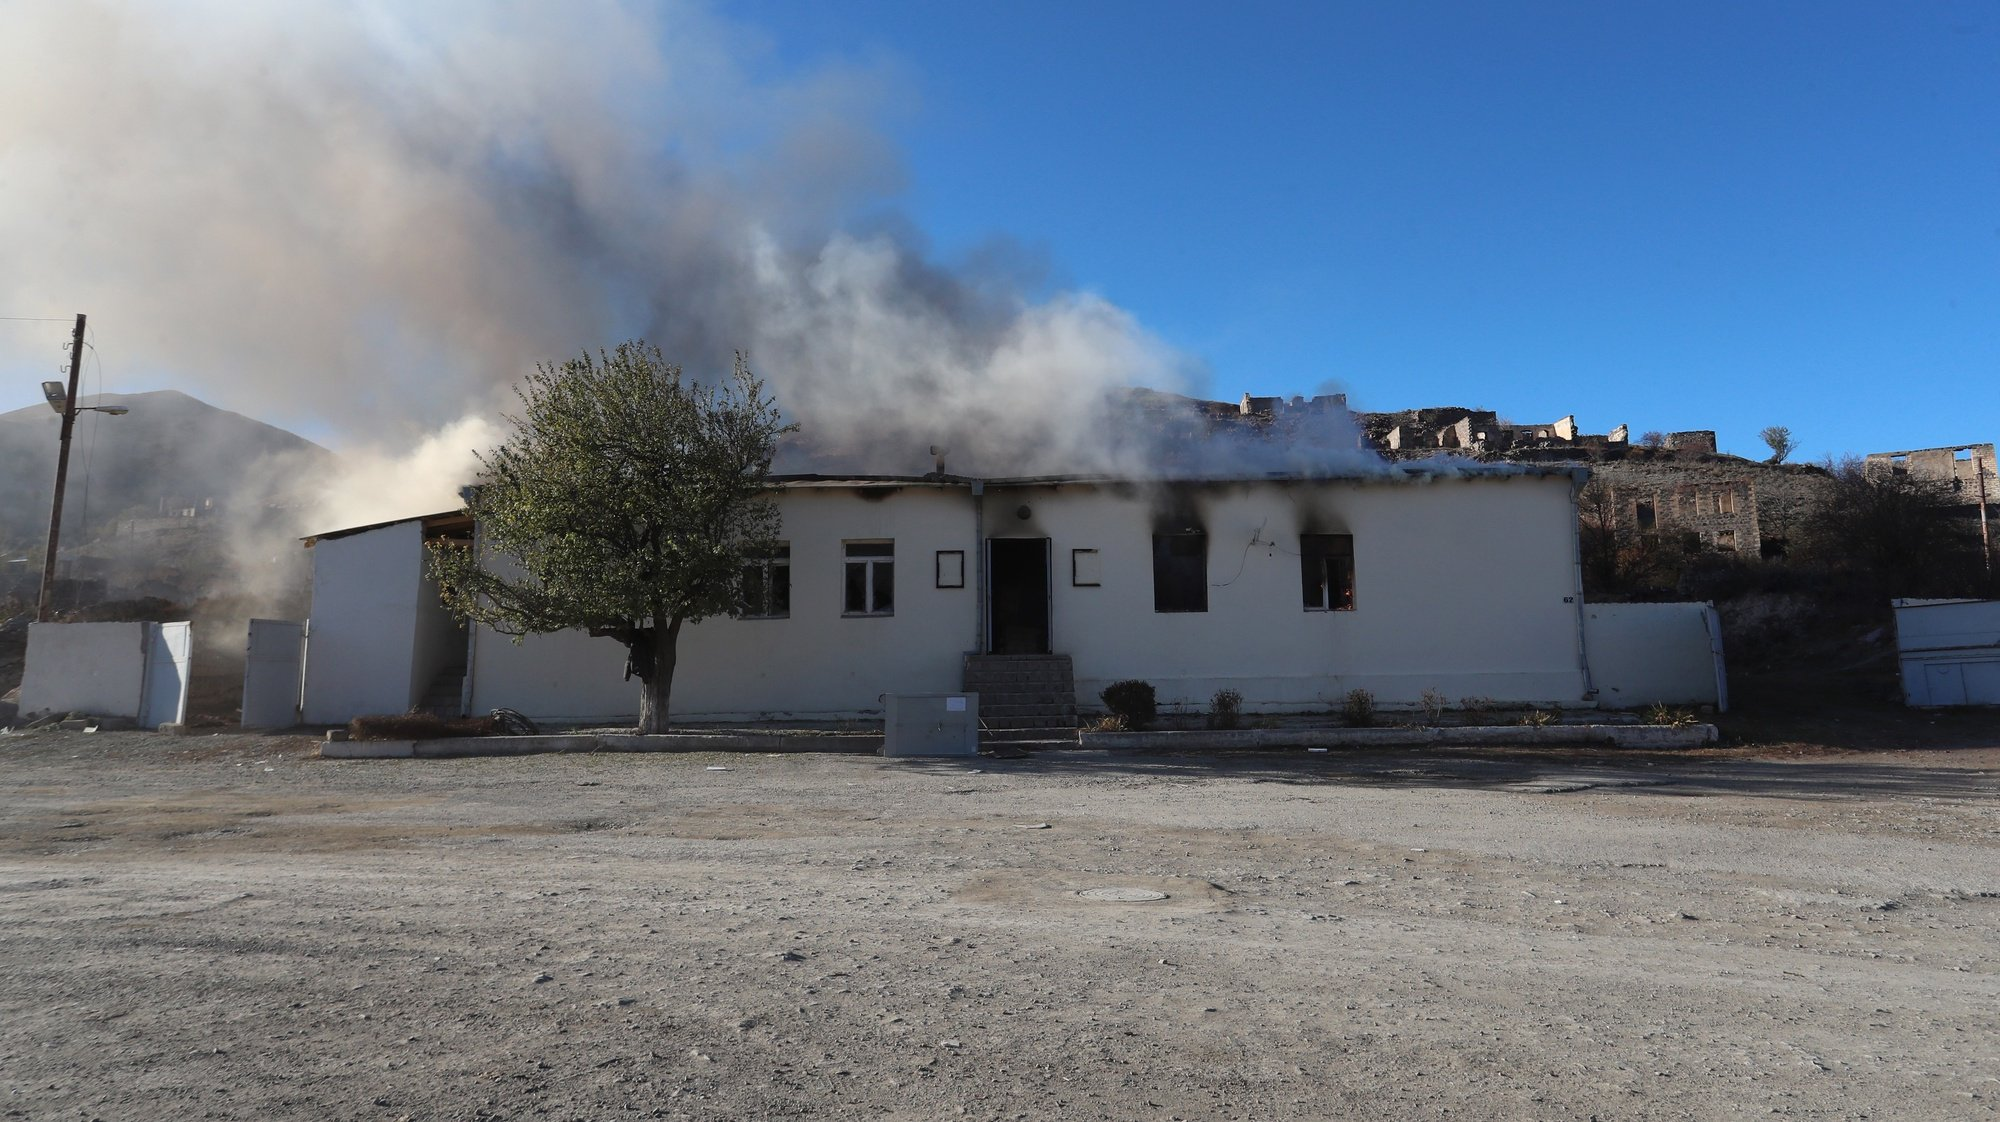 epa08839845 A house burns in the town of Kalbajar ( Karvatchar) in Kalbajar region, Azerbaijan, 24 November 2020, before the handover of the region under Azerbaijan's control. On 09 November 2020 Presidents of Azerbaijan and Russia and Armenian Prime Minister signed a trilateral statement announcing a ceasefire and the halt of all military operations in the Nagorno-Karabakh conflict zone, where clashes had erupted on 27 September 2020 between Azerbaijan and Armenia over the Nagorno-Karabakh territory along the contact line of the self-proclaimed Nagorno-Karabakh Republic (also known as Artsakh).  EPA/HAYK BAGHDASARYAN /PHOTOLURE MANDATORY CREDIT